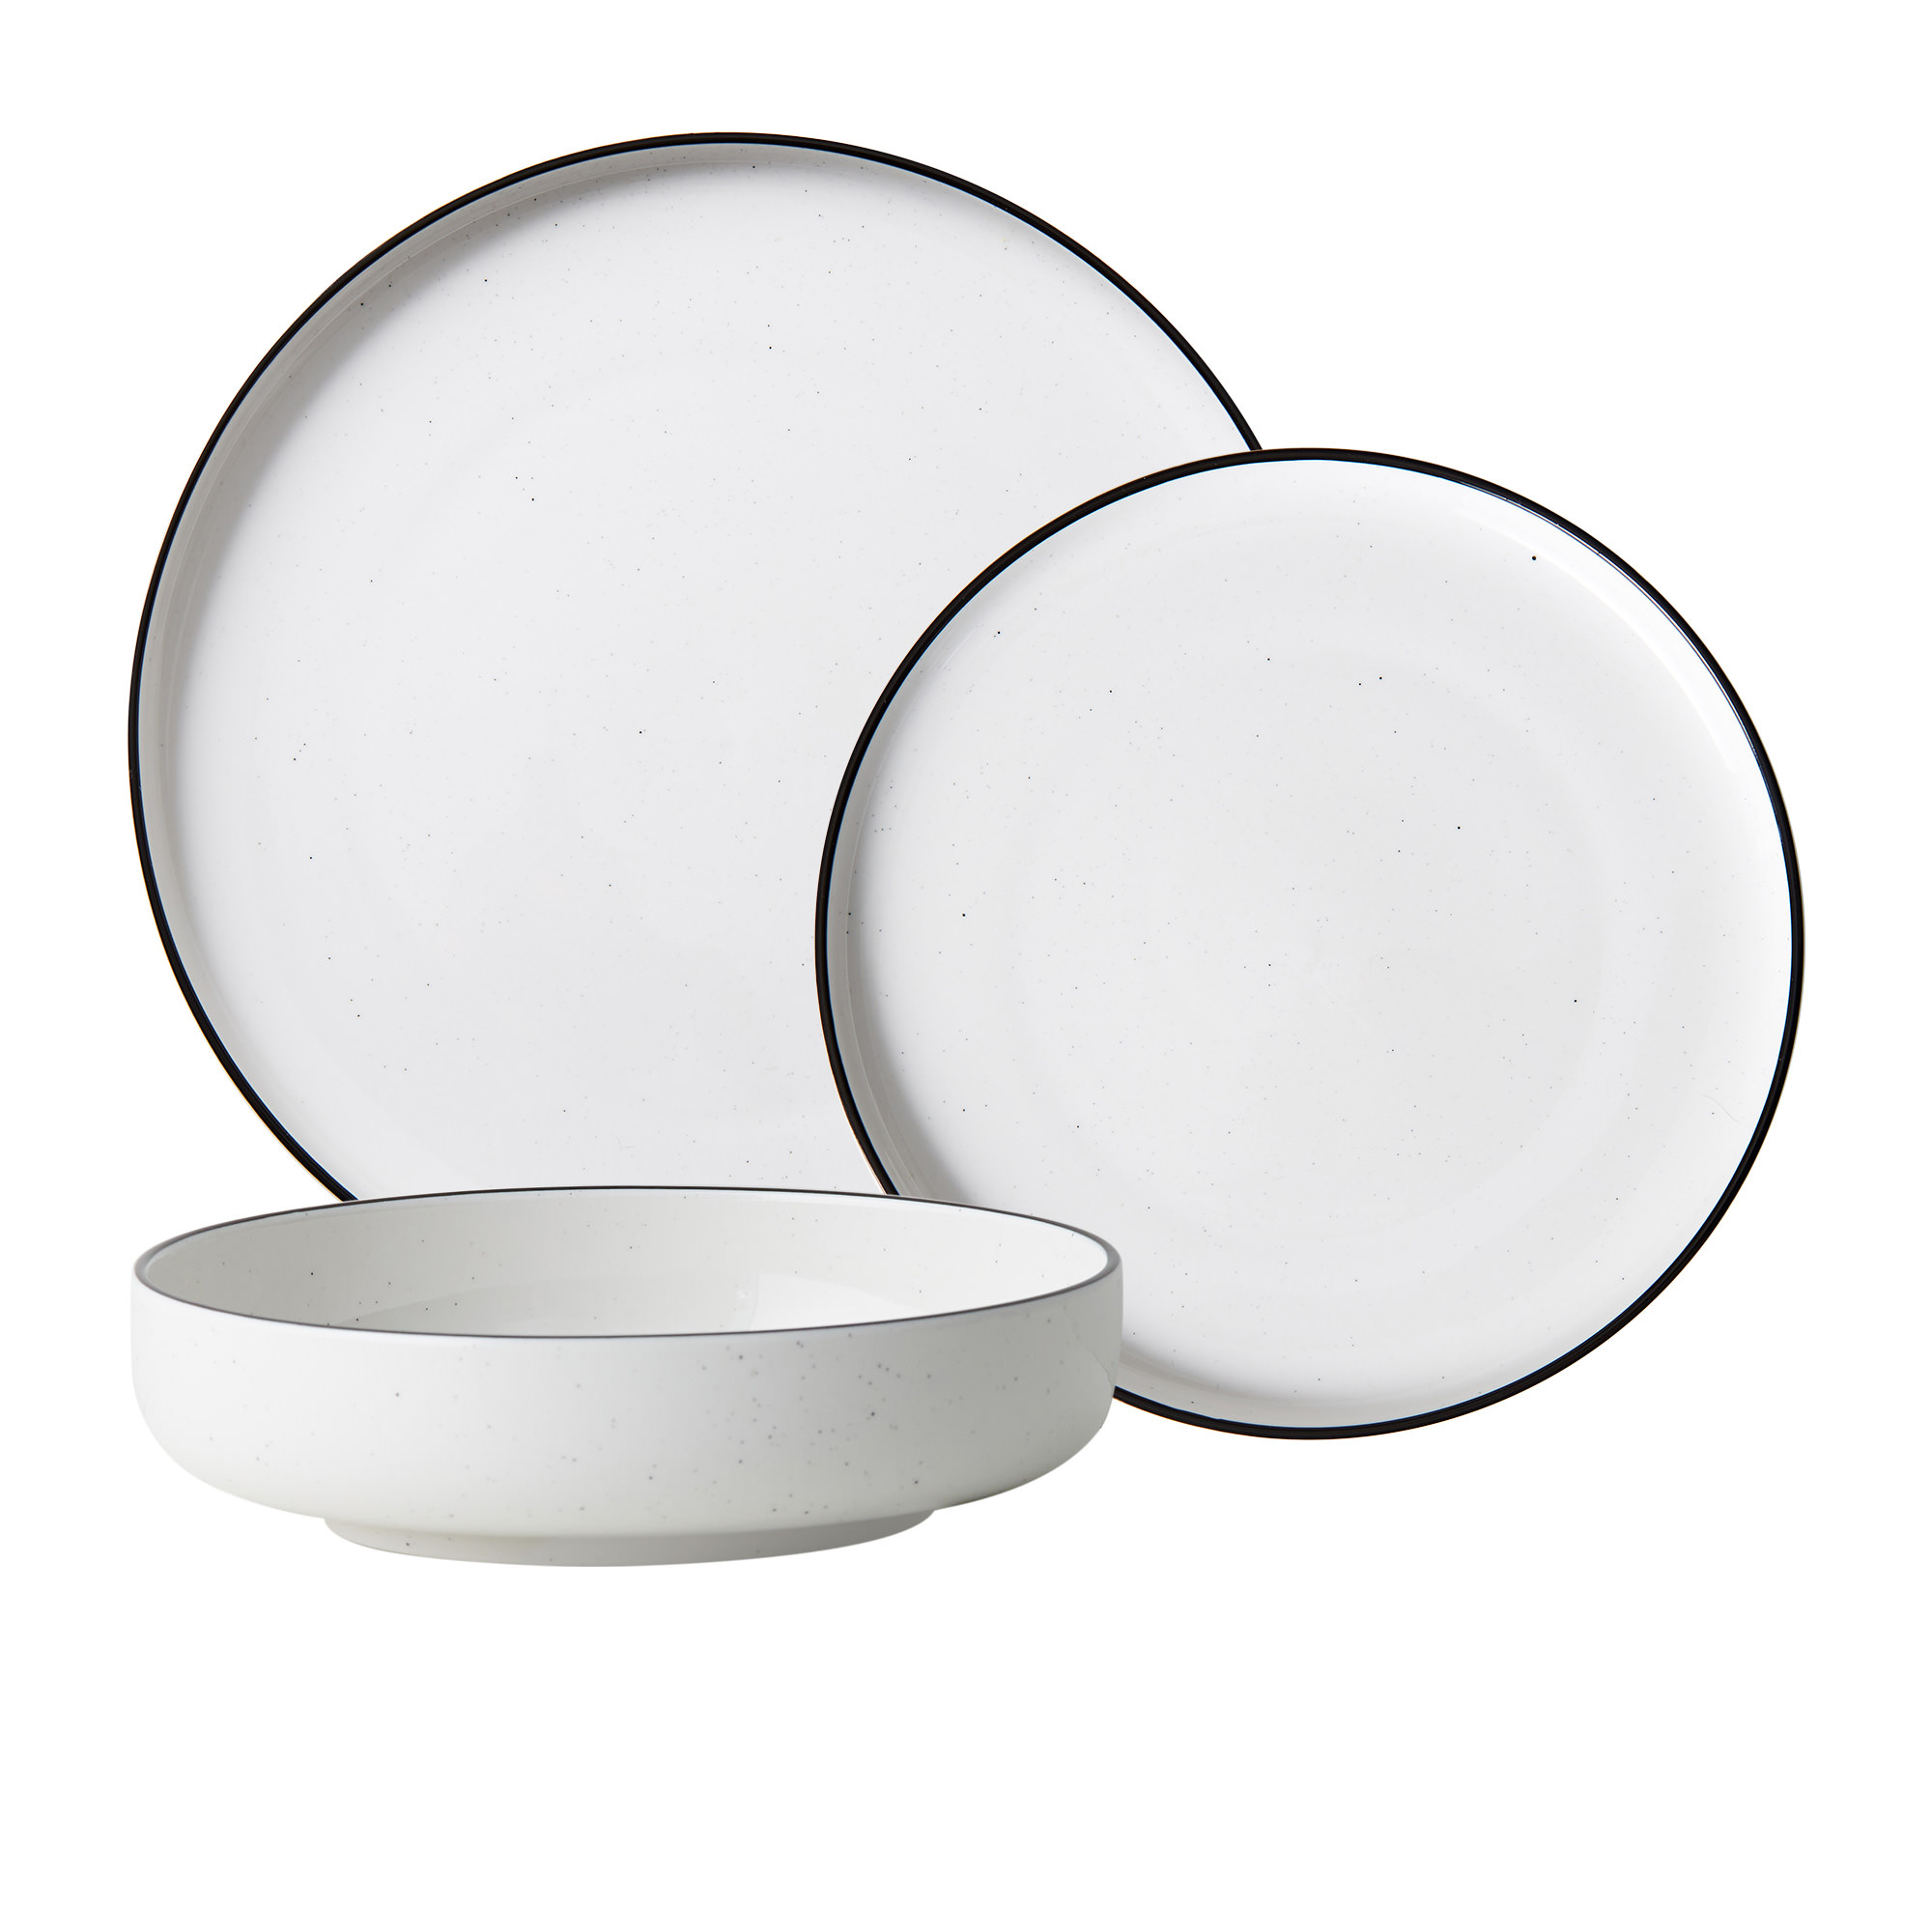 Salisbury & Co Mona 12pc Dinner Set